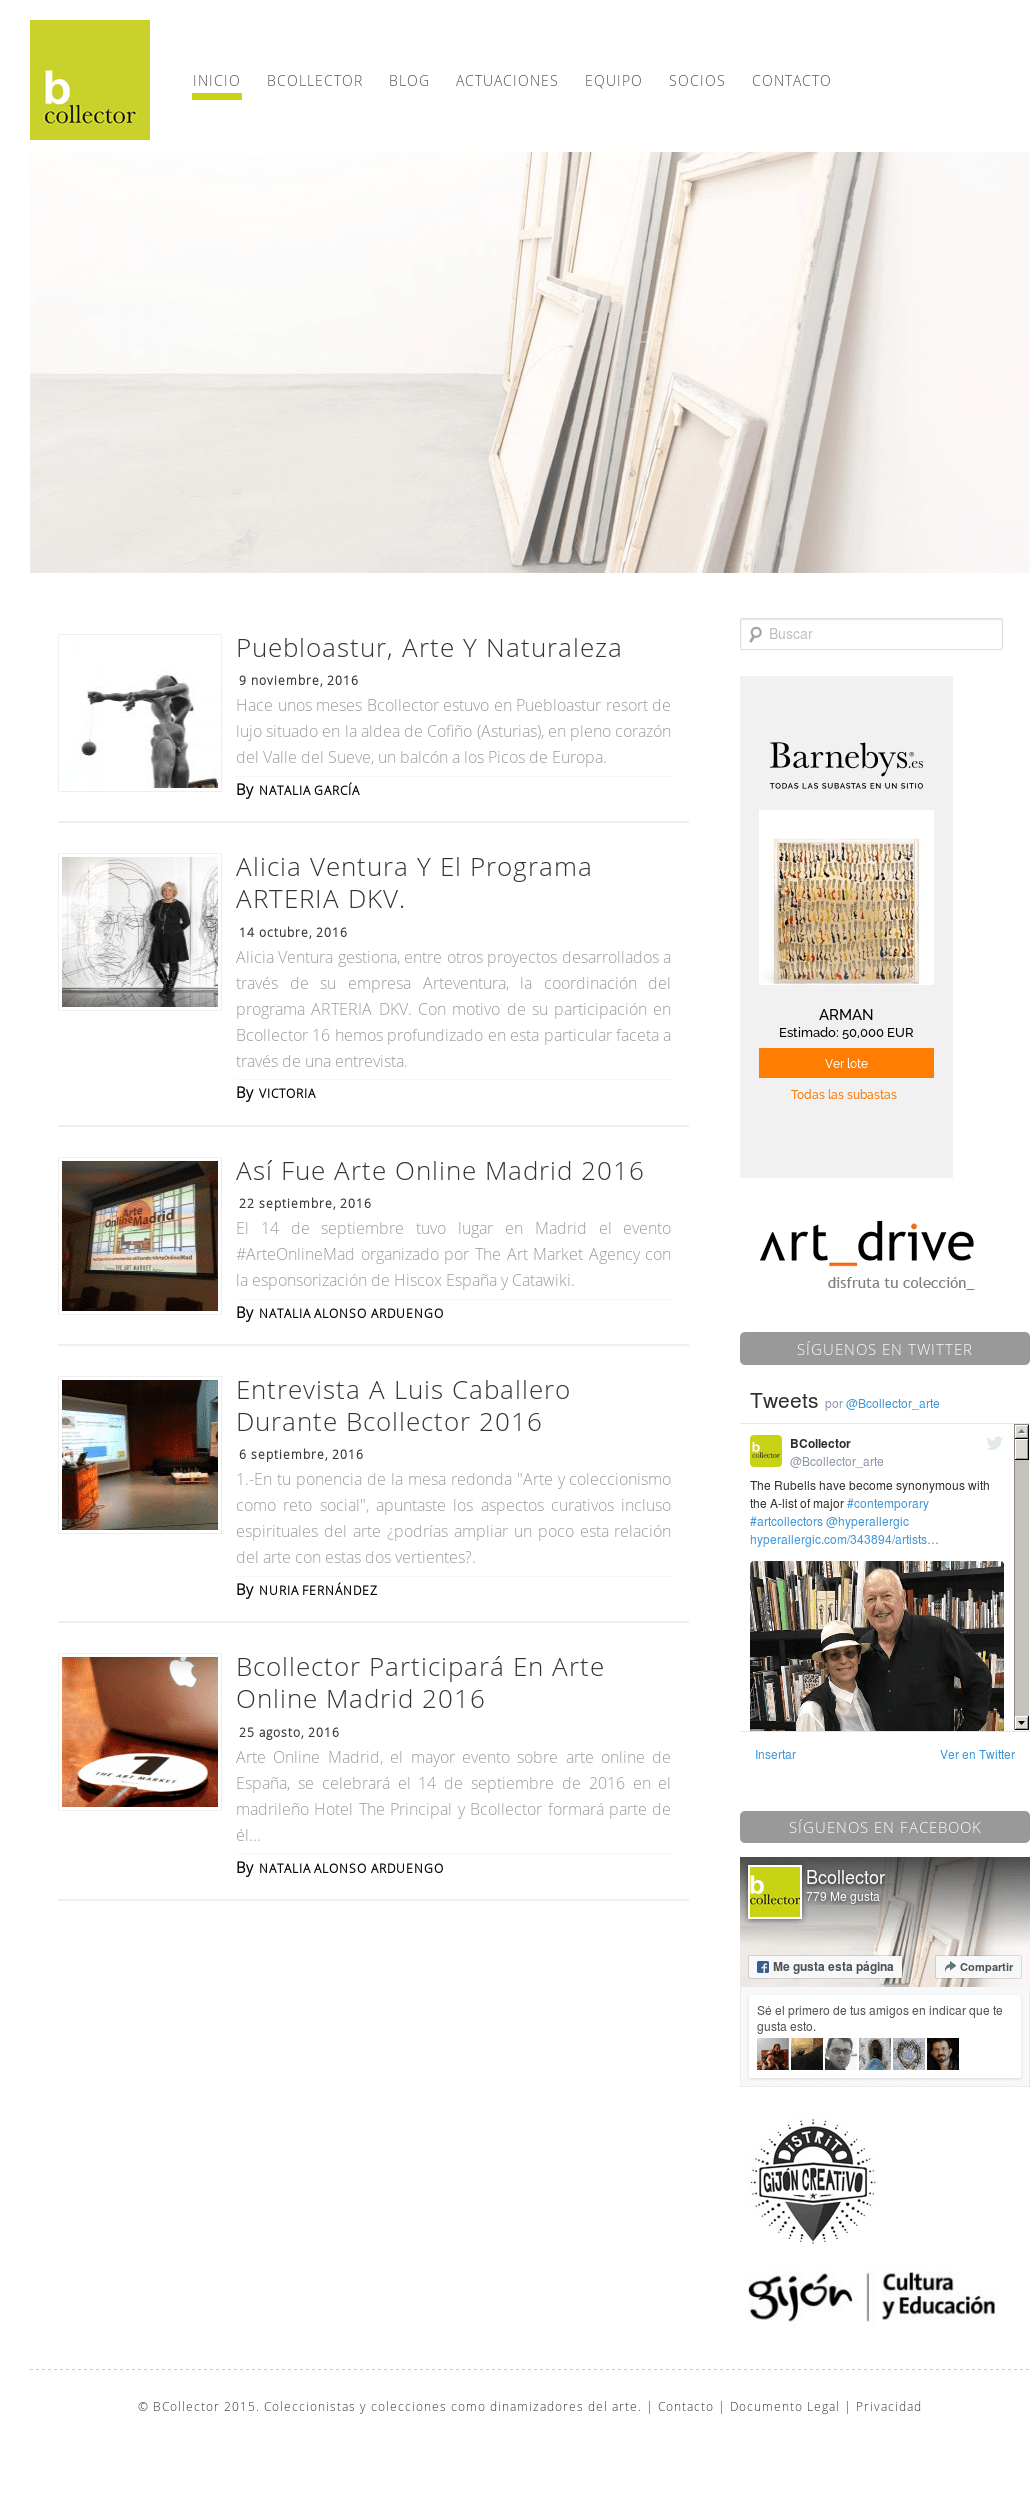 Arte Online Madrid Bcollector Competitors Revenue And Employees Owler Company Profile